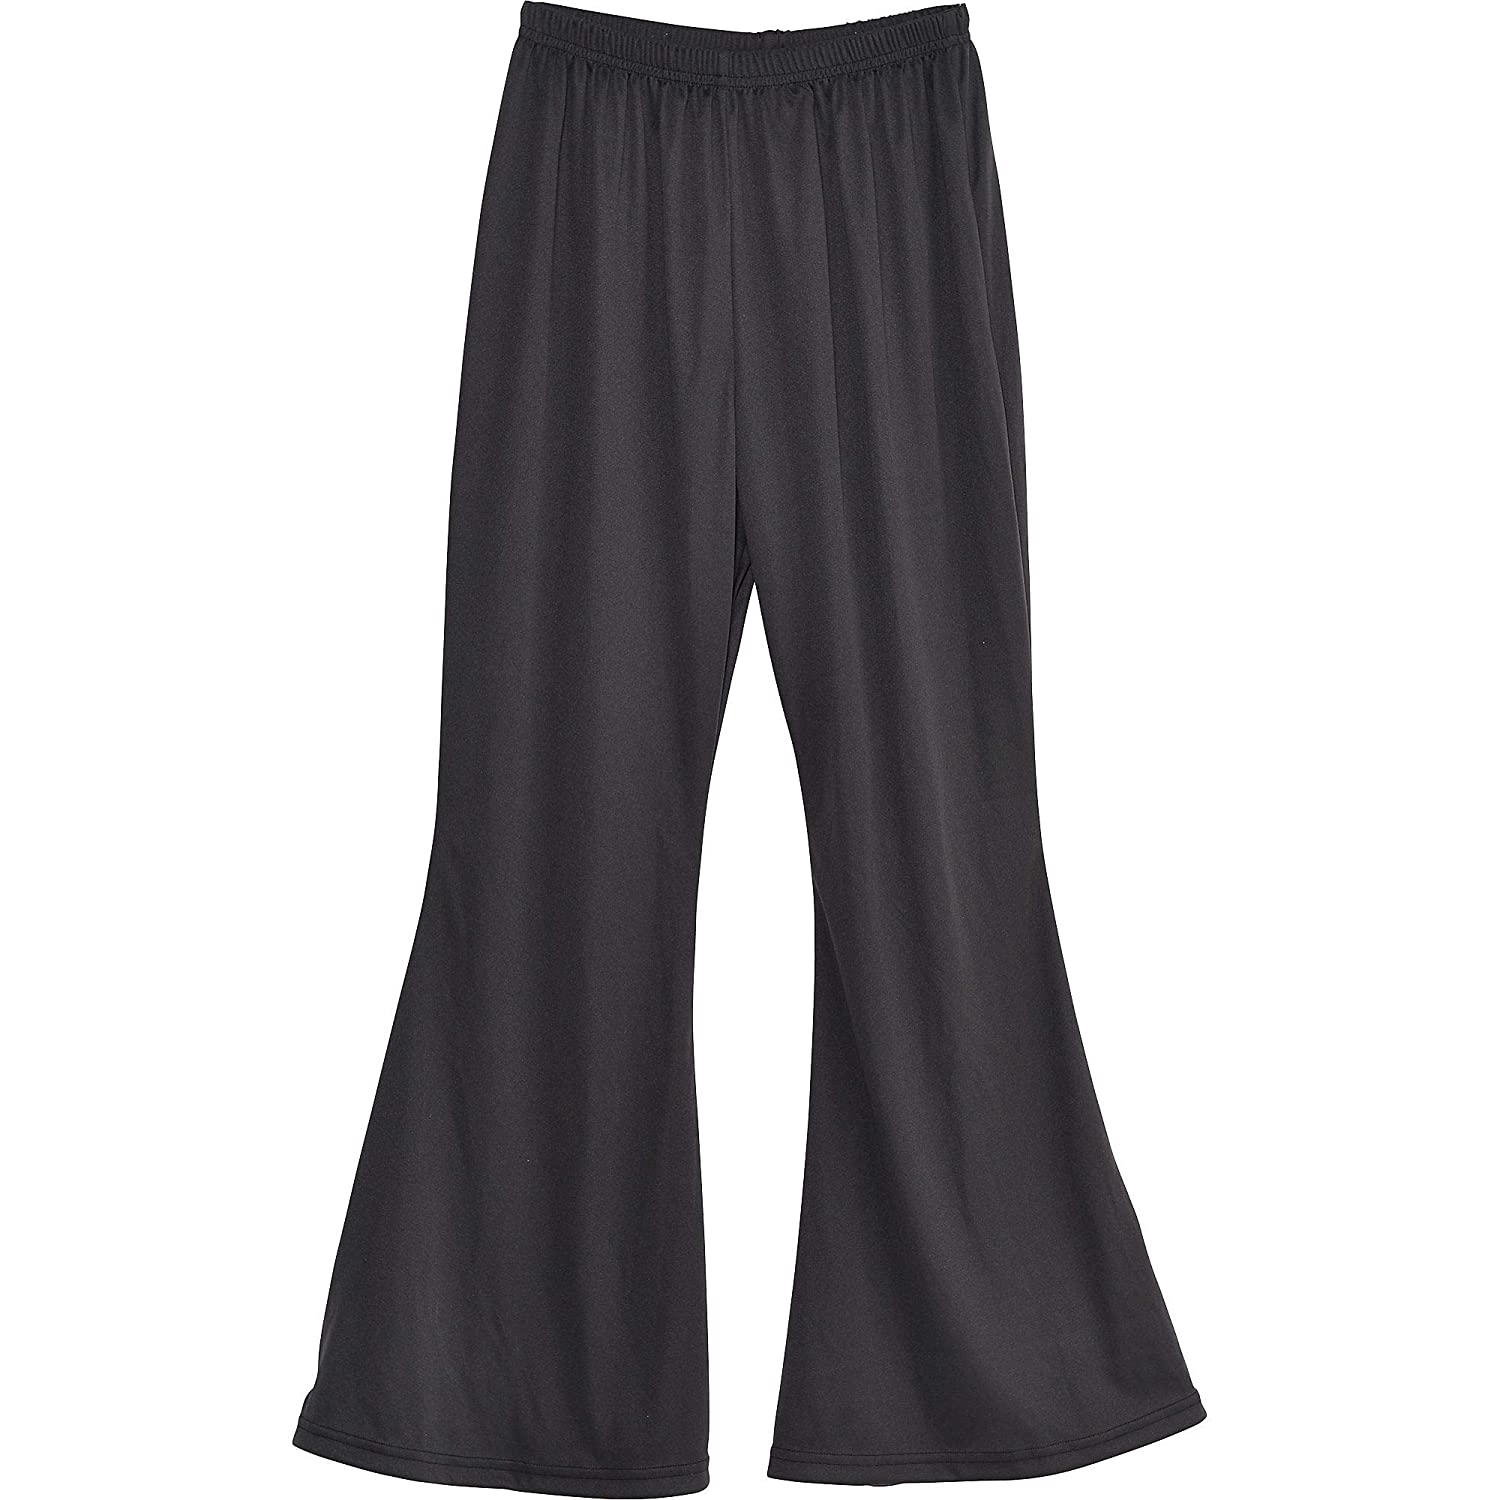 Low Cost Black Bell Bottoms for Men. Standard size with elasticated waist for an easy fit.